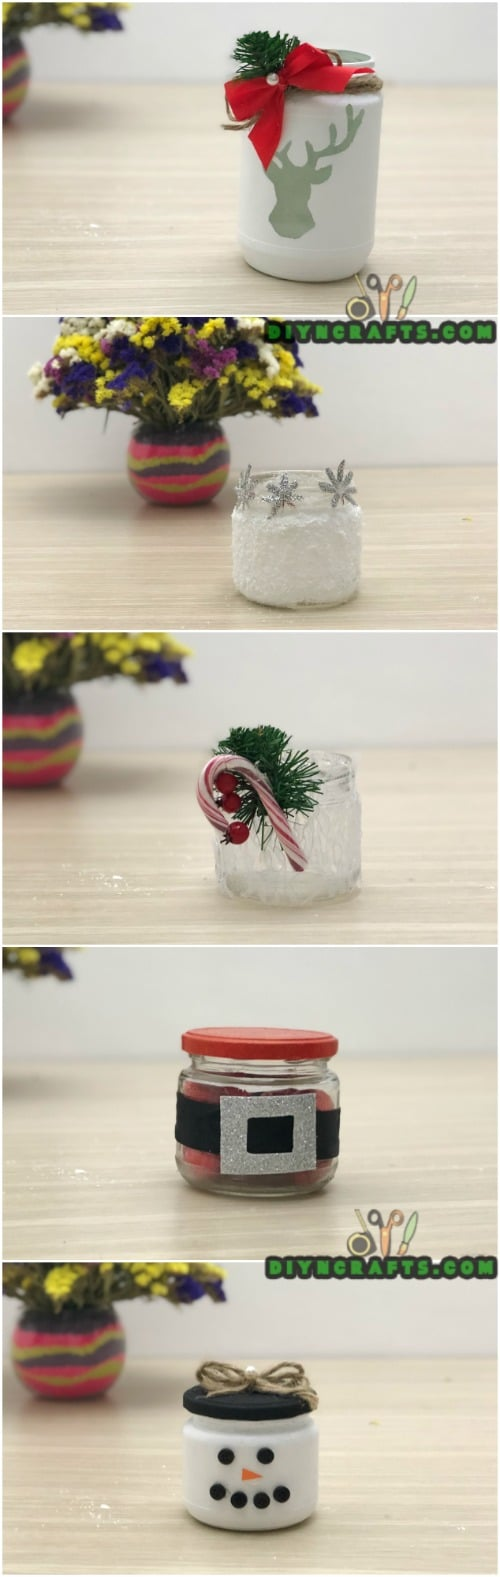 5 Decorative Christmas Jar Projects to Decorate Your Home Frugally - In fact, I've decided to put together five festive Christmas jar crafts for you here! The video is under 3 minutes long, so these are all super fast and easy crafts—perfect for when you are looking for something you can put together quickly. This makes them the ideal gift for all those special folks on your list you don't know how to shop for! #diy #christmas #crafts #masonjar #jar #decorations #decor #handmade